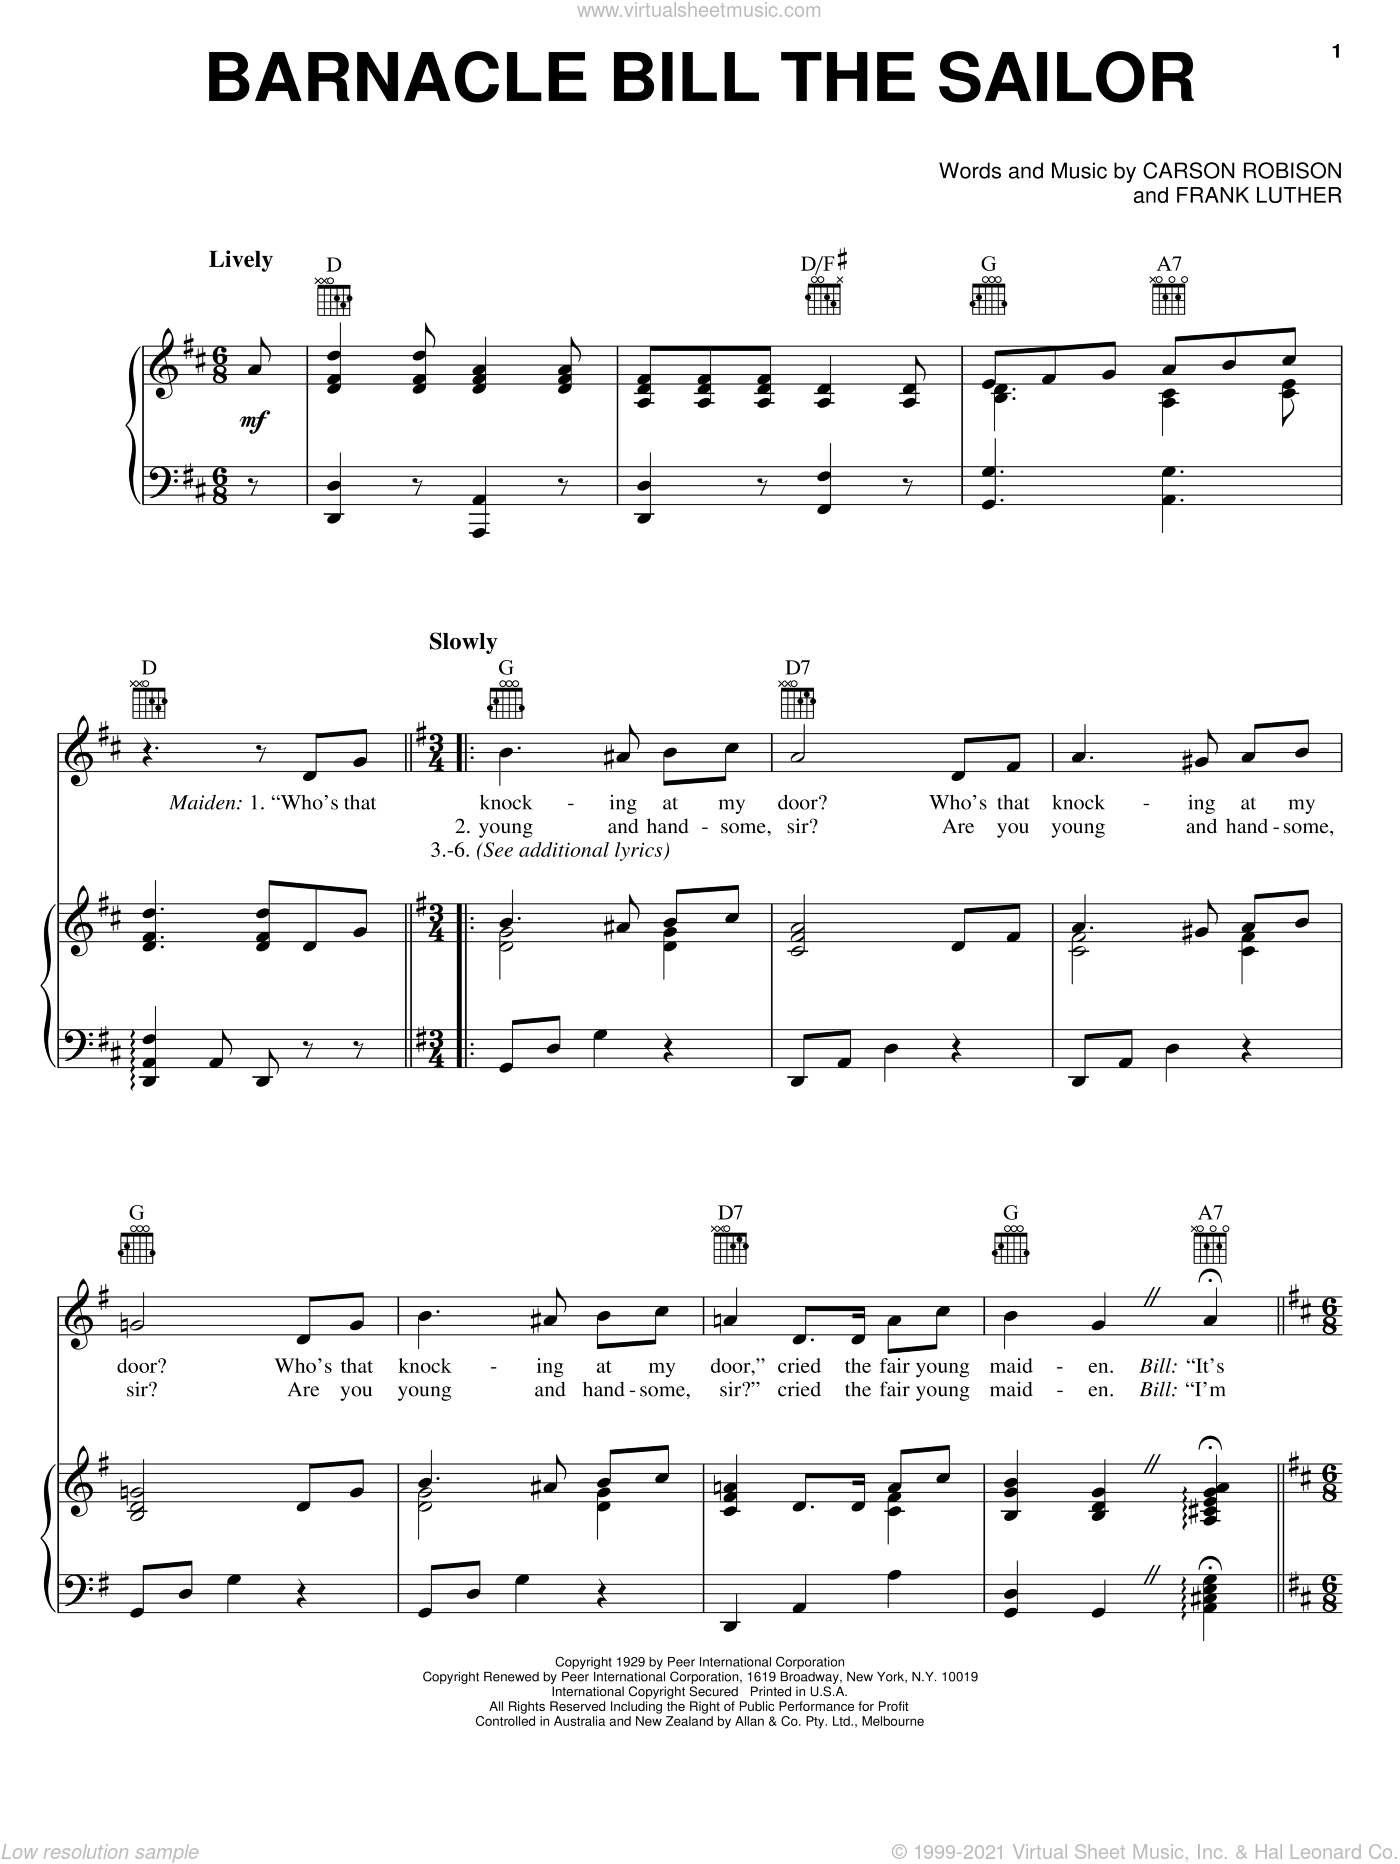 Barnacle Bill The Sailor sheet music for voice, piano or guitar by Frank Luther and Carson Robison, intermediate skill level